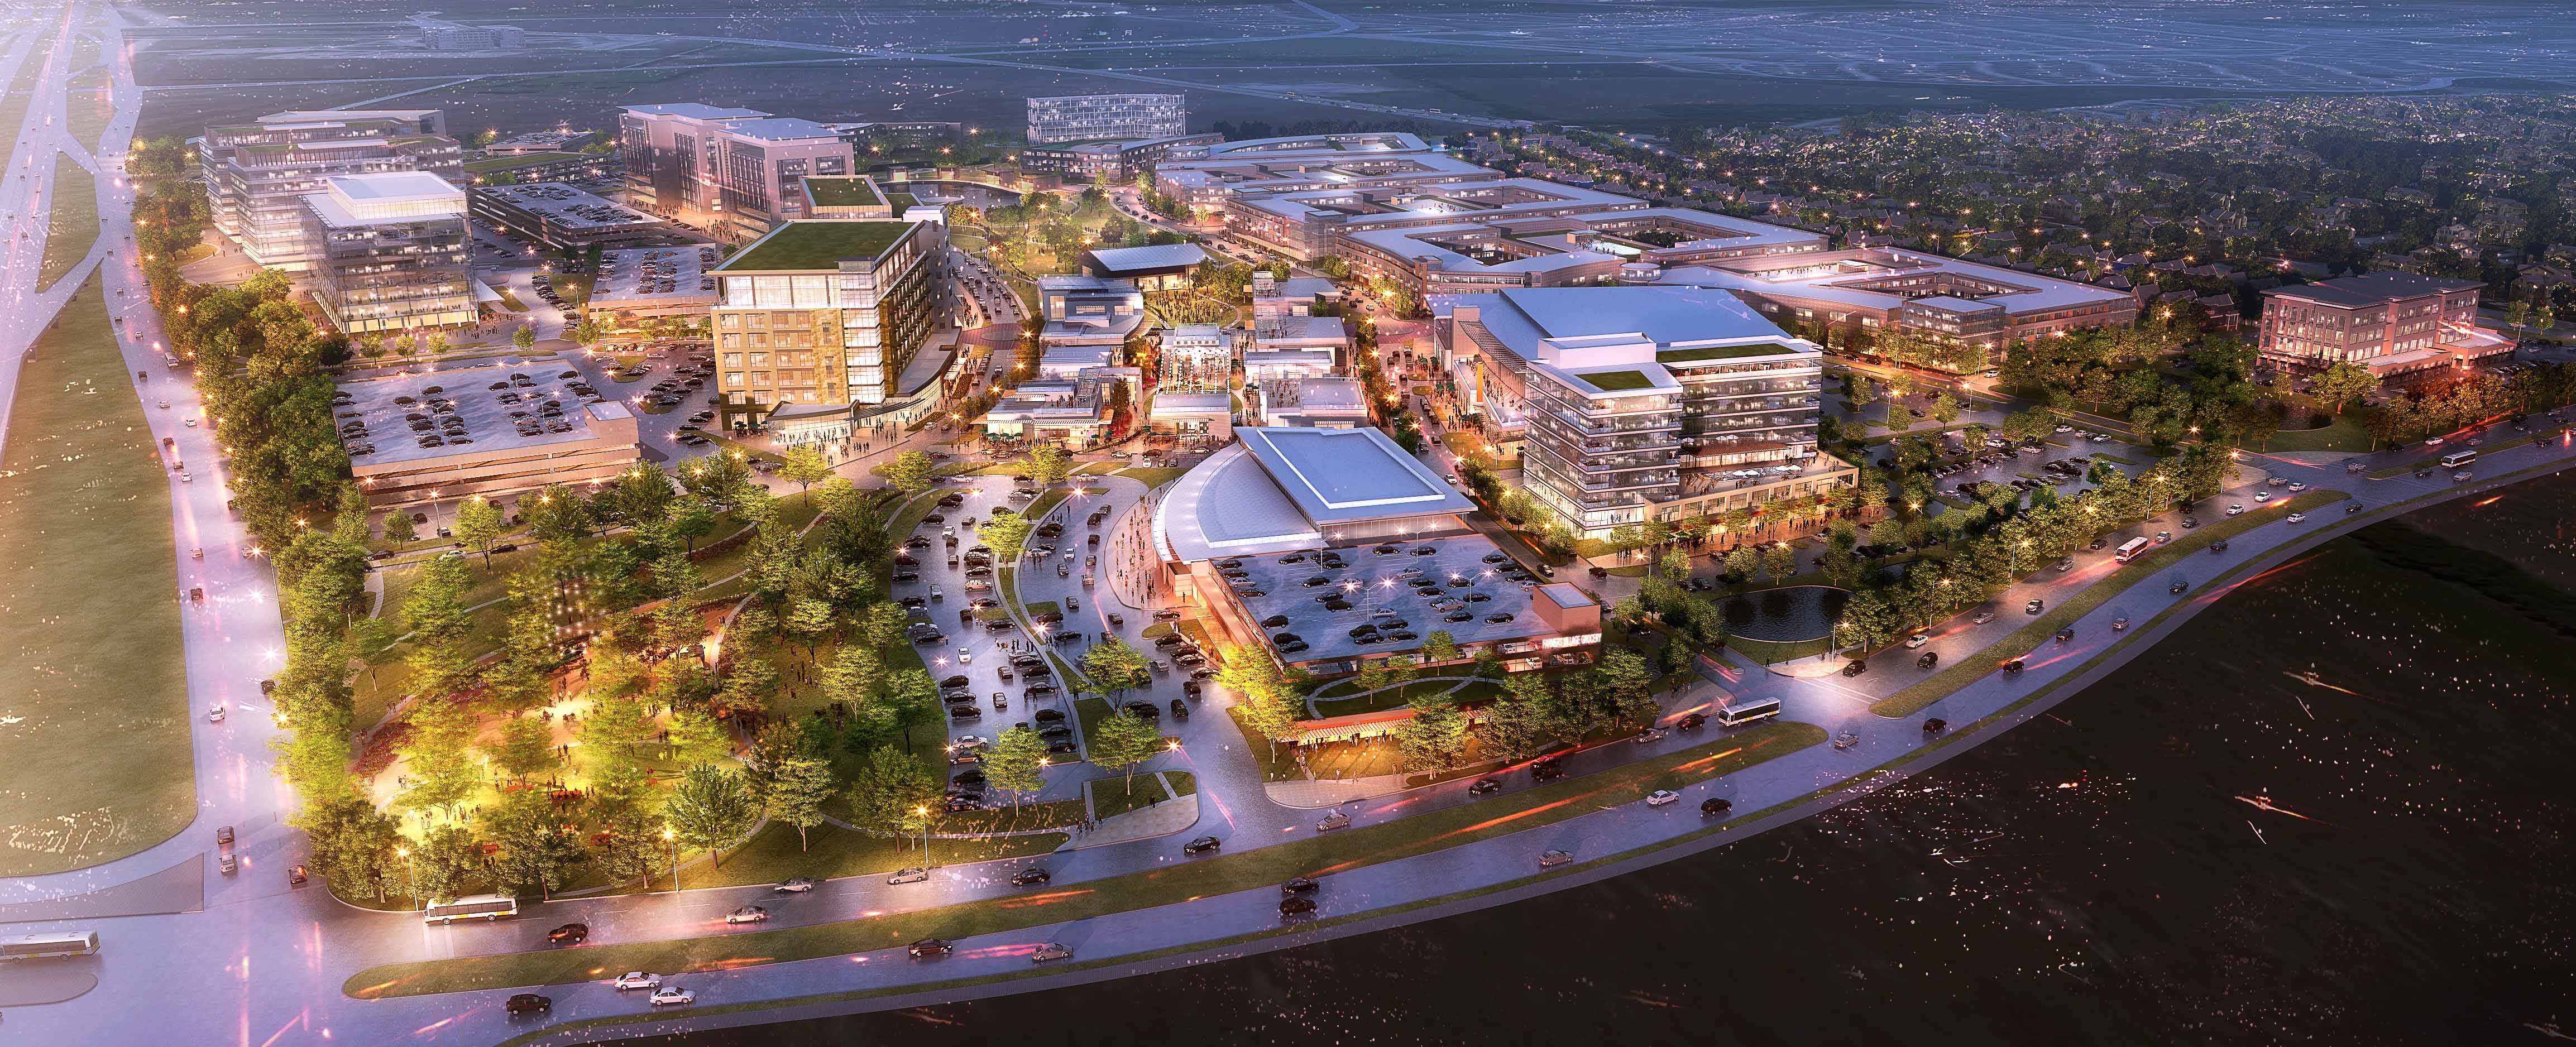 Hines Announces New Mixed Use Development In Allen Tx Hines